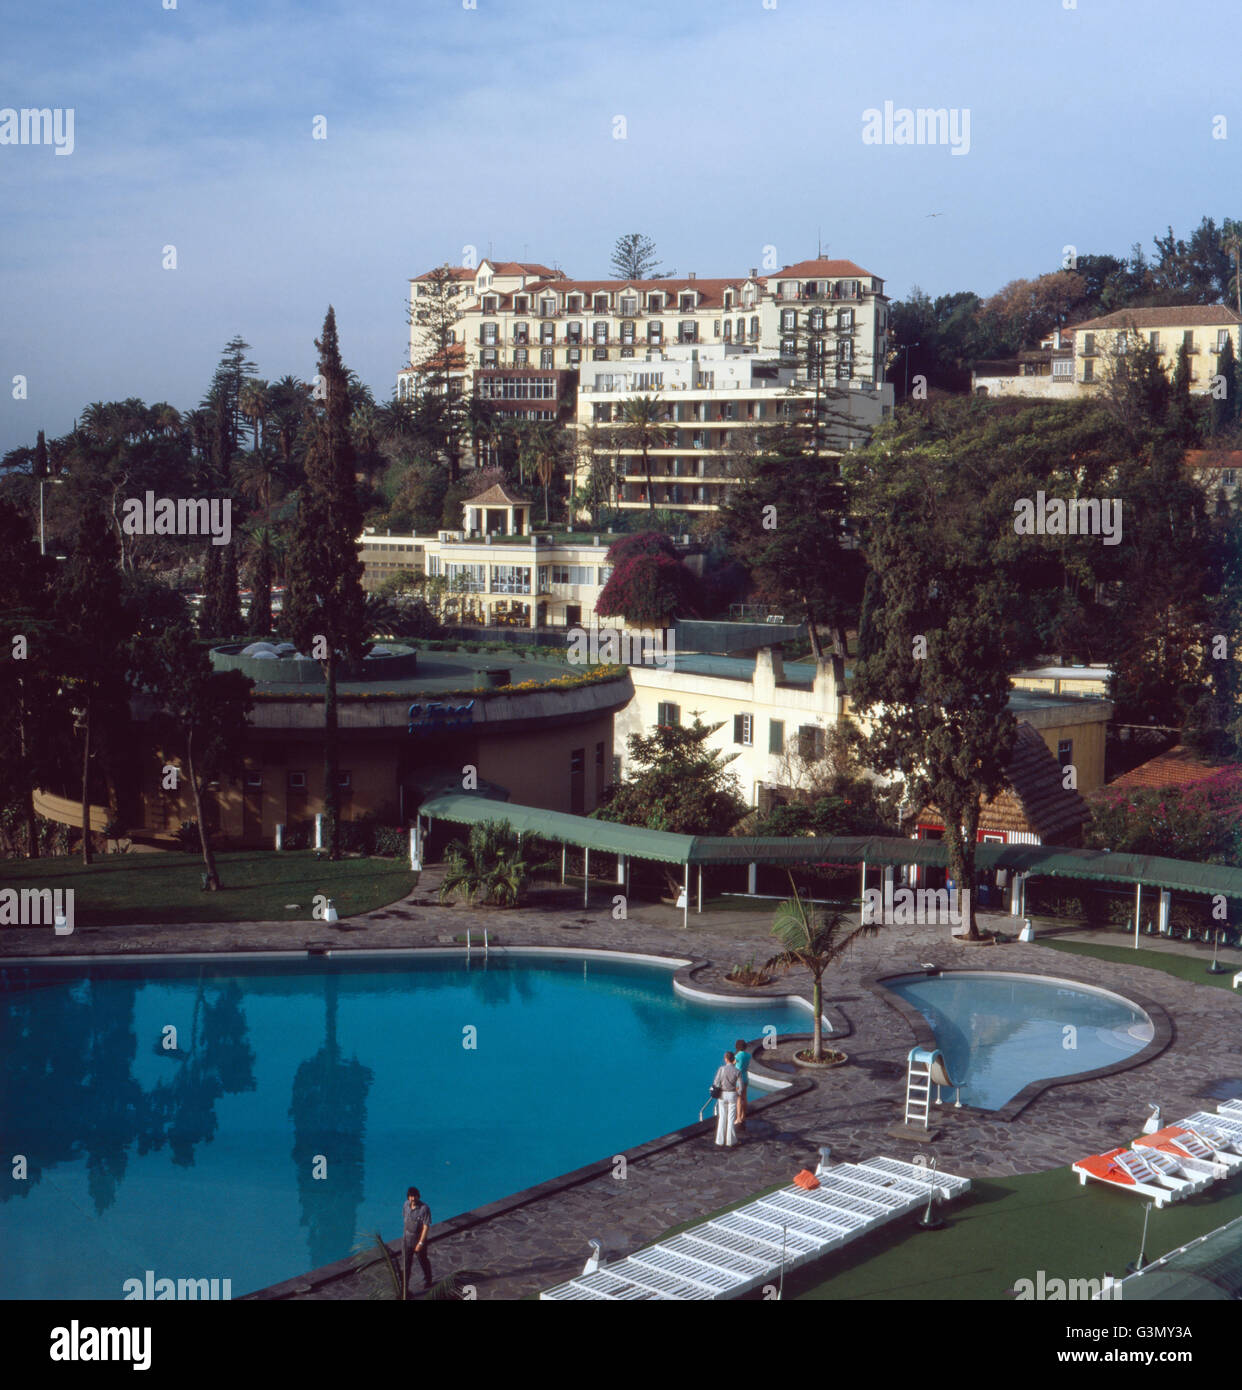 urlaub im hotel reid 39 s palace in funchal madeira portugal 1980 stock photo royalty free image. Black Bedroom Furniture Sets. Home Design Ideas